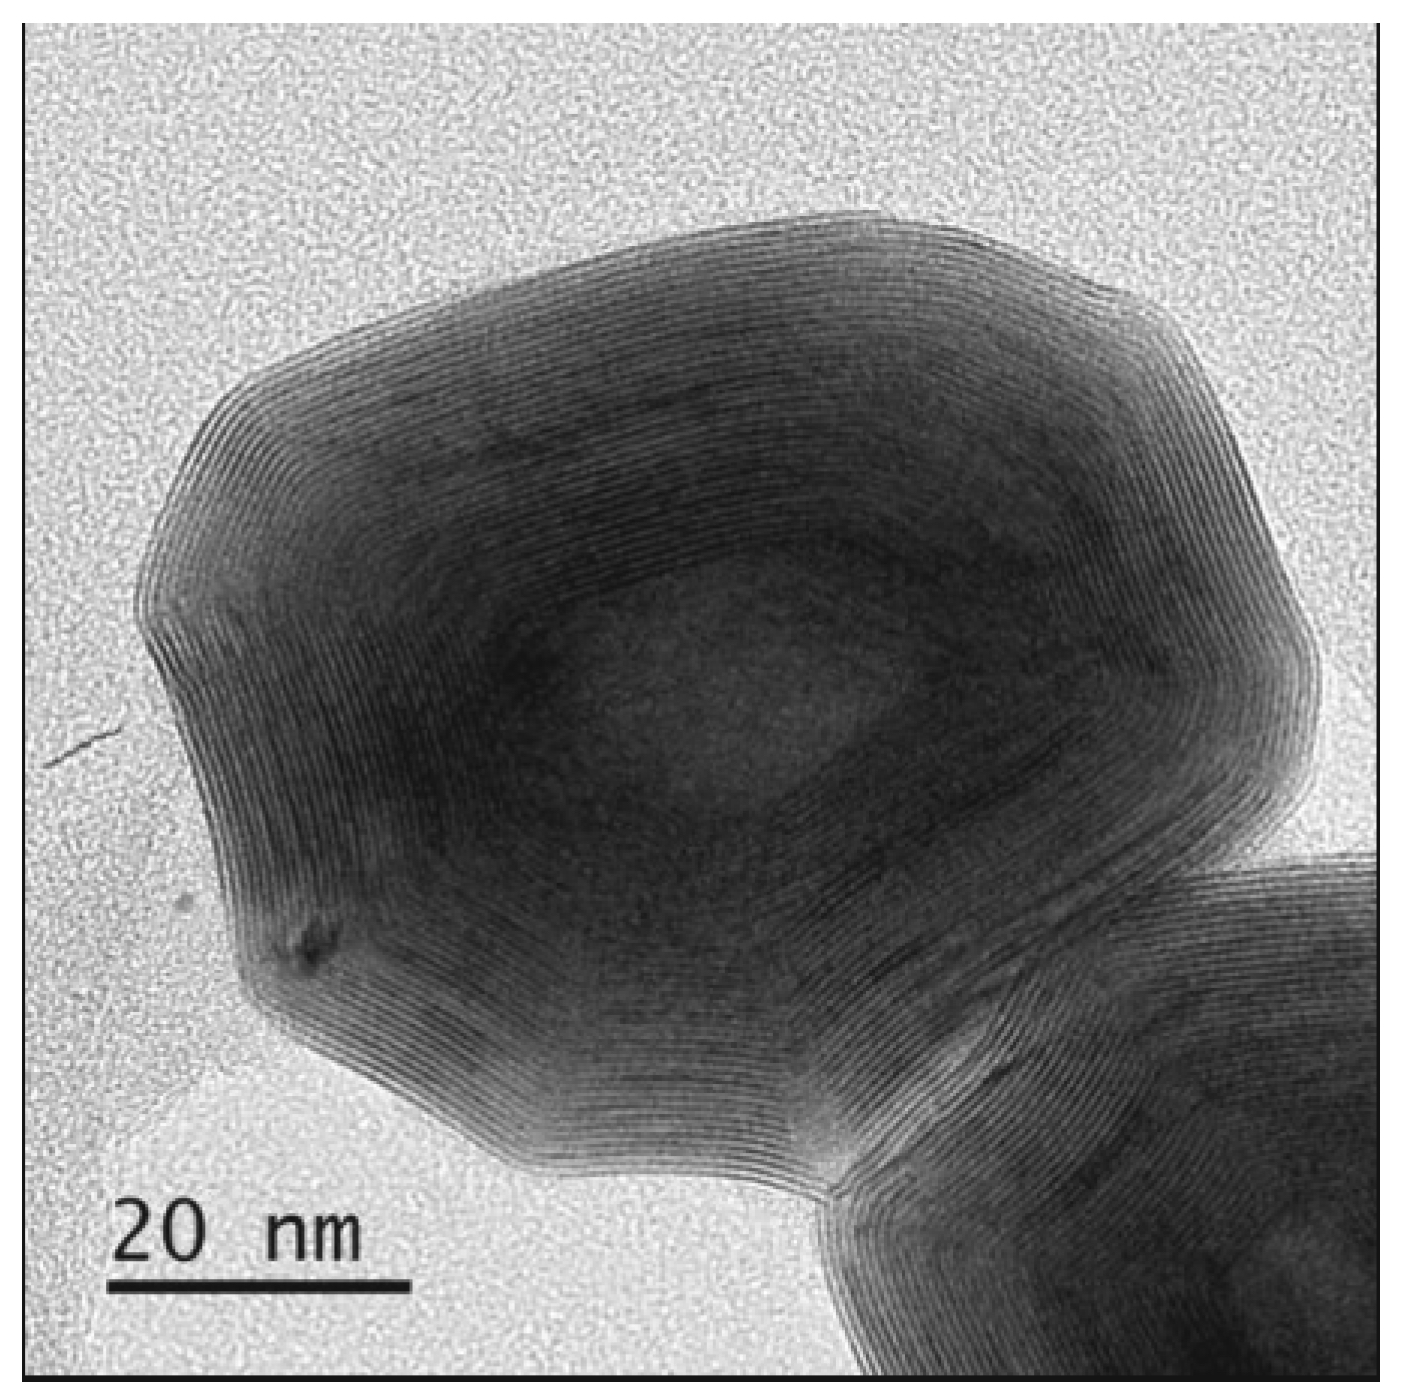 TEM Image of an IF-WS2 particle